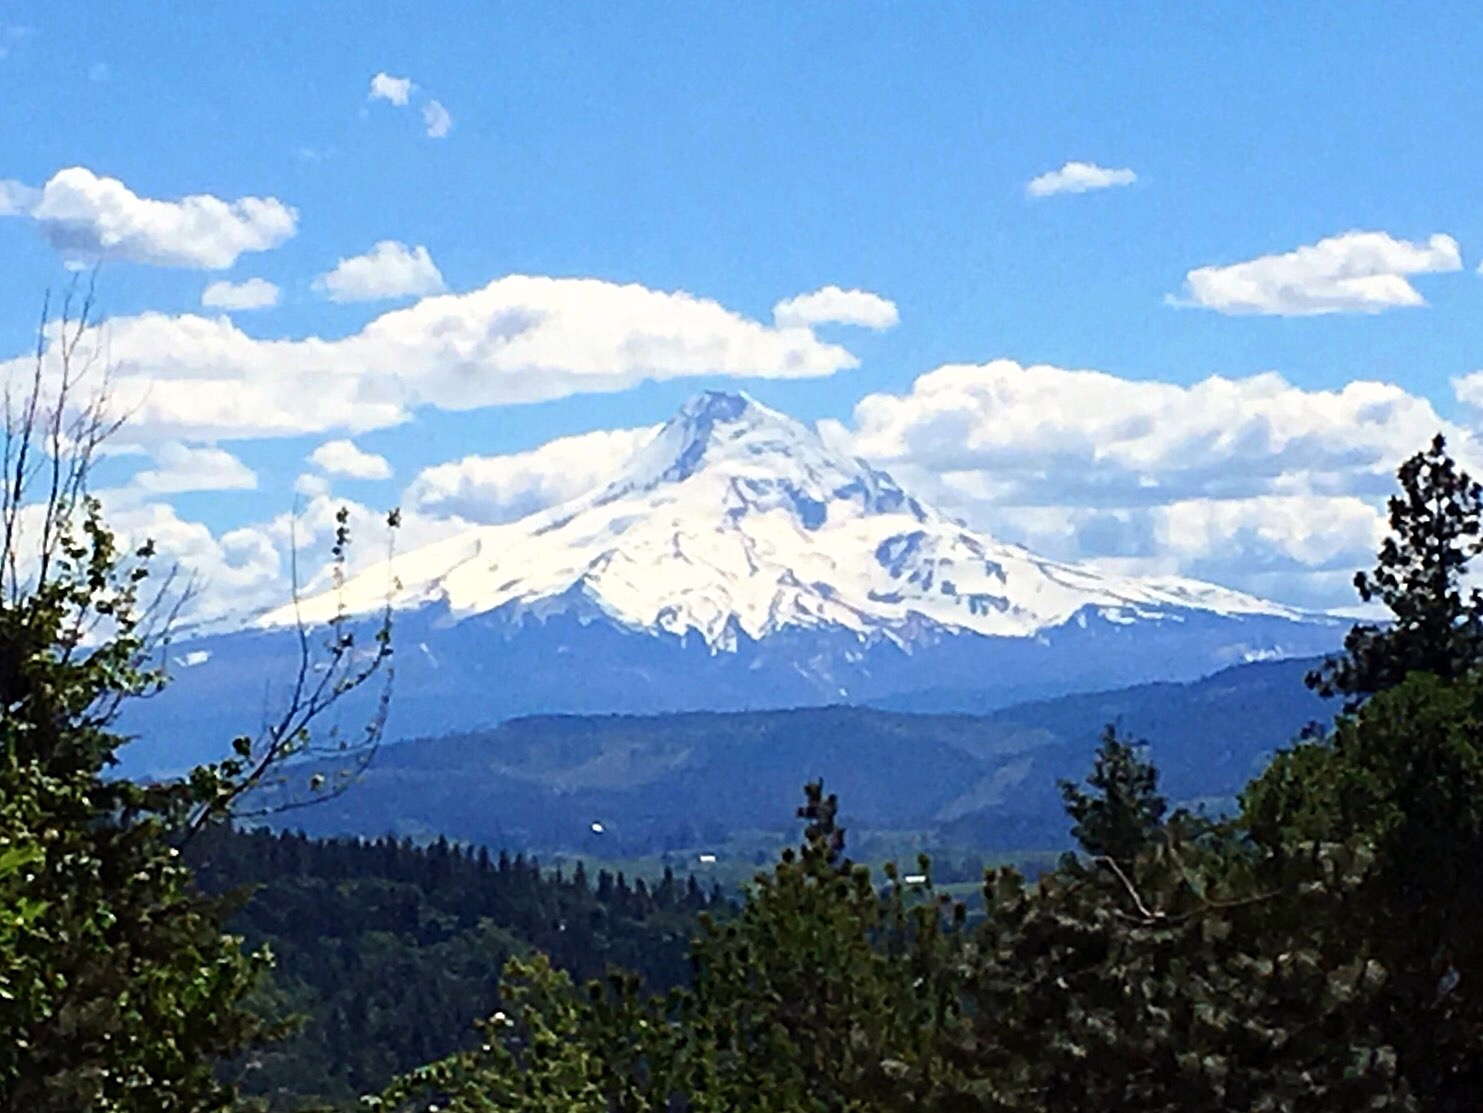 View of Mt. Hood from the patio at Everybody's Brewing in White Salmon, Washington.